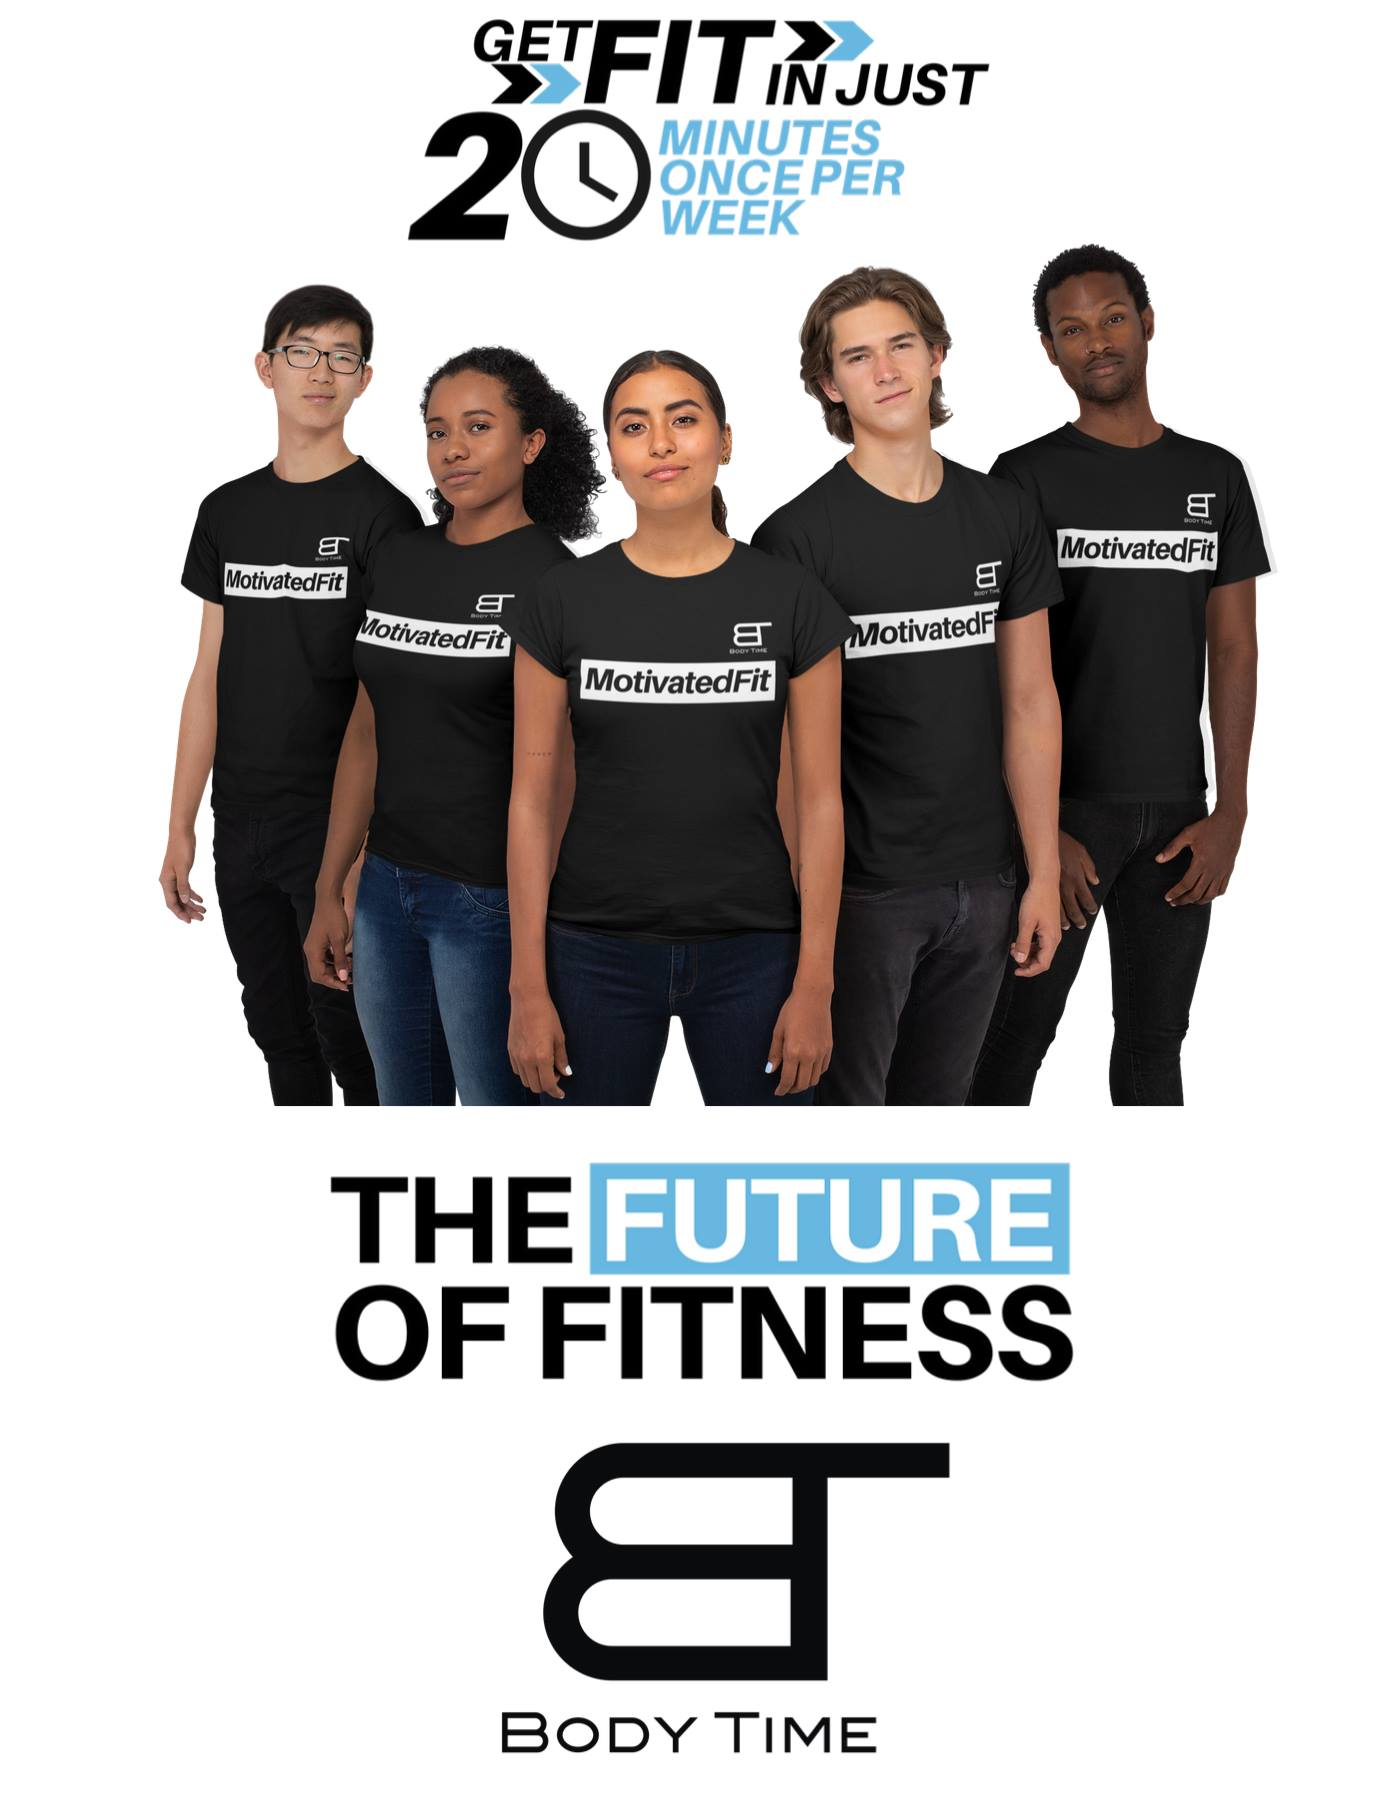 motivated fit at body time the future of fitness